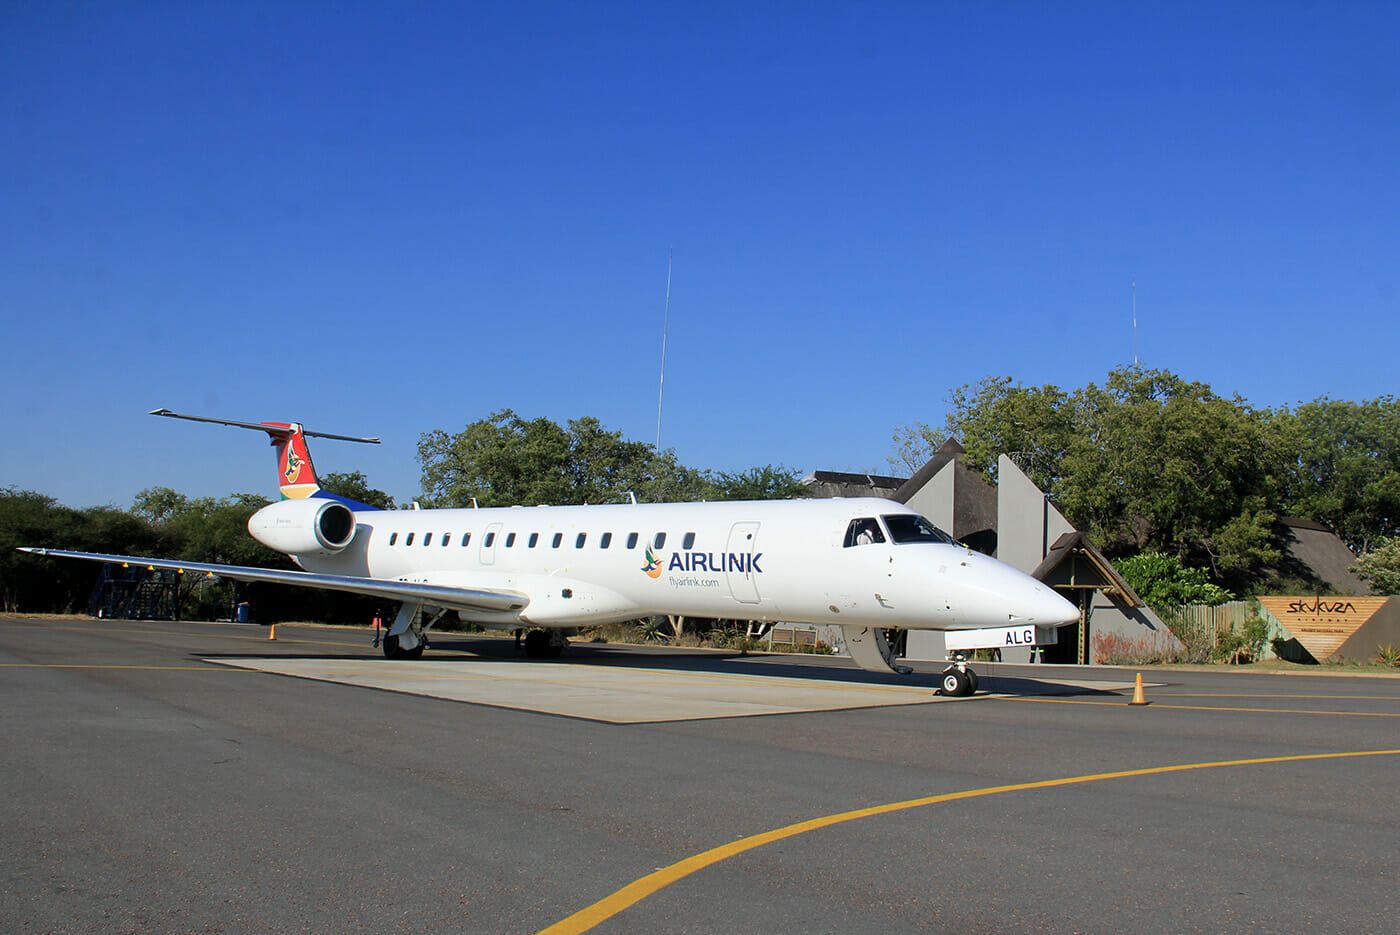 Airlink's Embraer 135 at Skukuza Airport. Photo by Heléne Ramackers